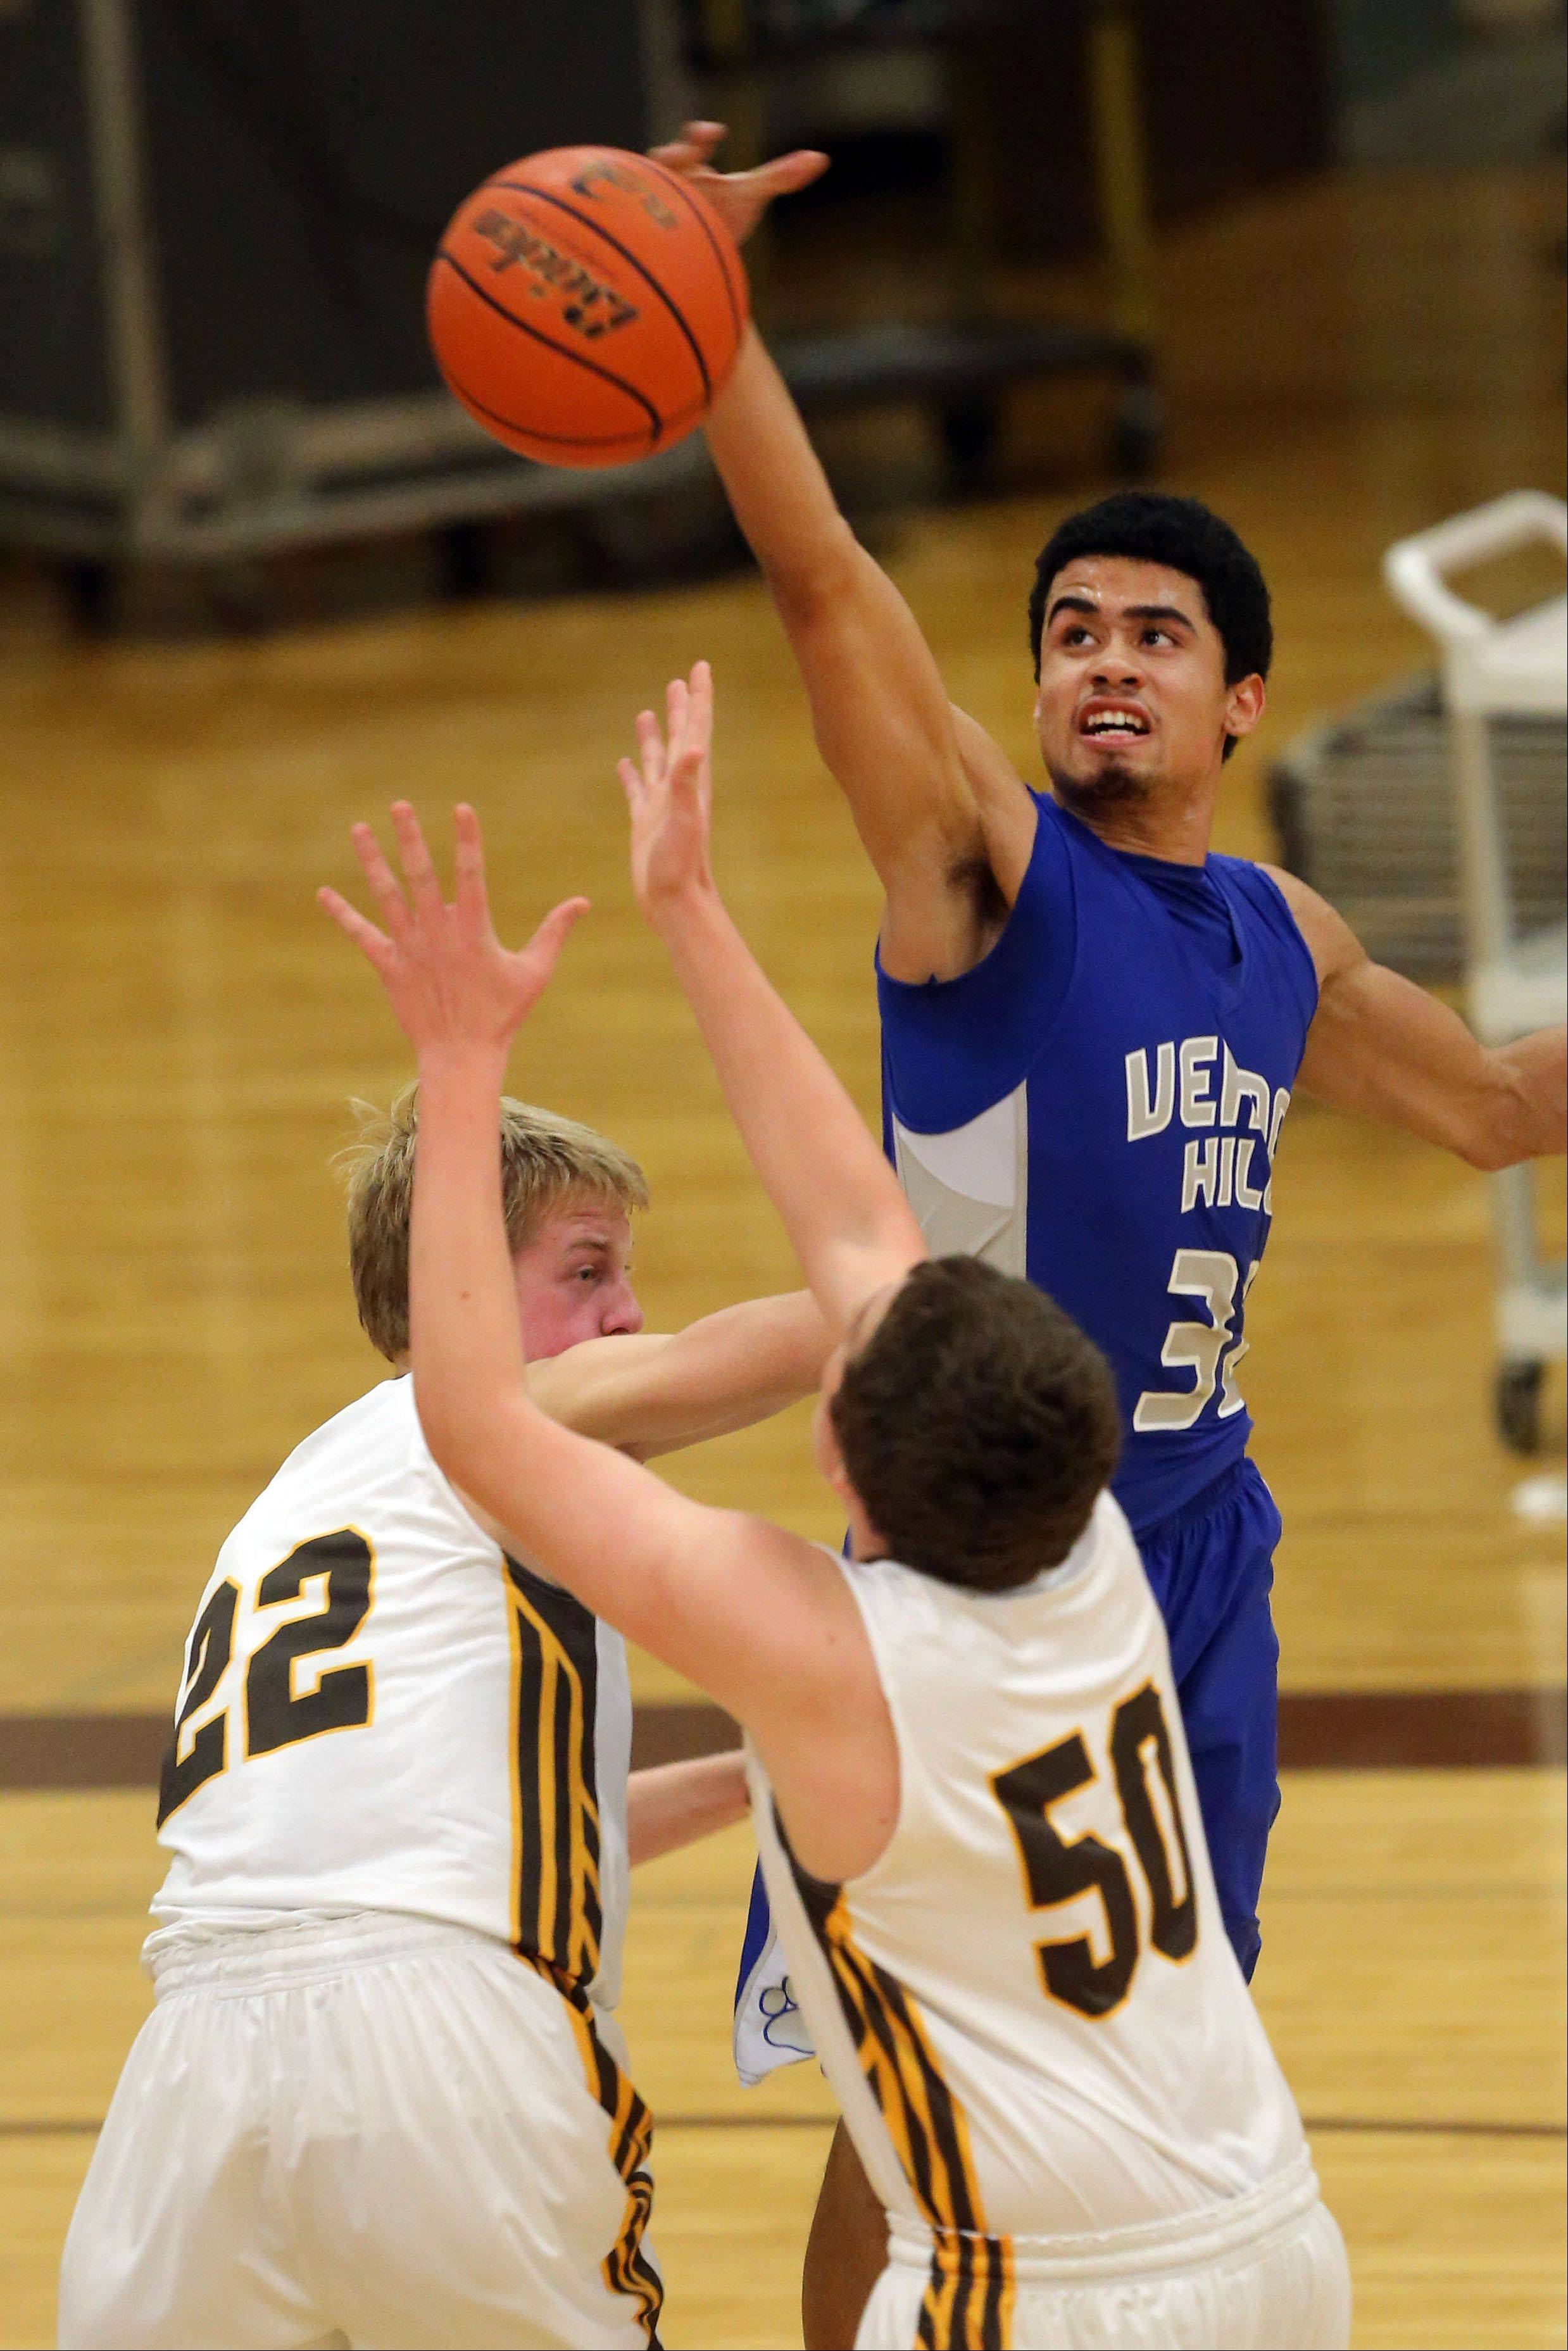 Vernon Hills' Matt Weaver, right, blocks the shot of Carmel's Lee Bowen.